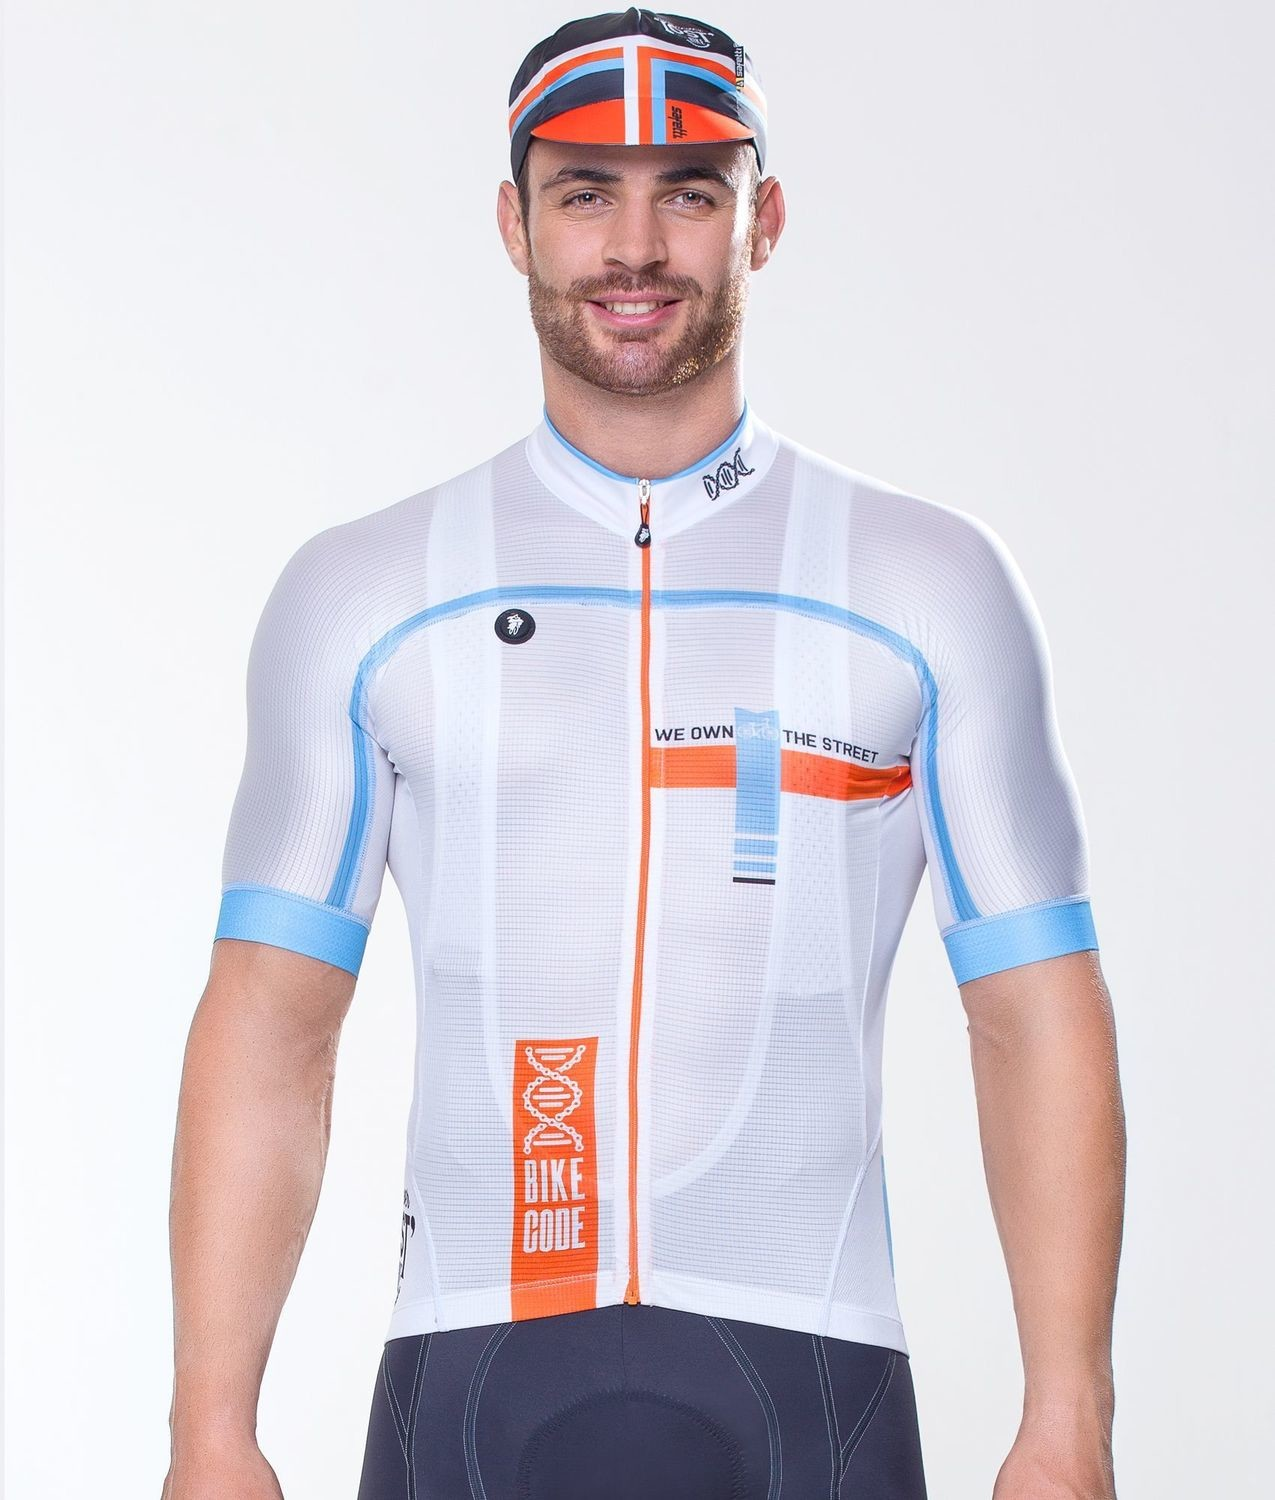 Short Sleeve Jersey - Bike Code White Orange